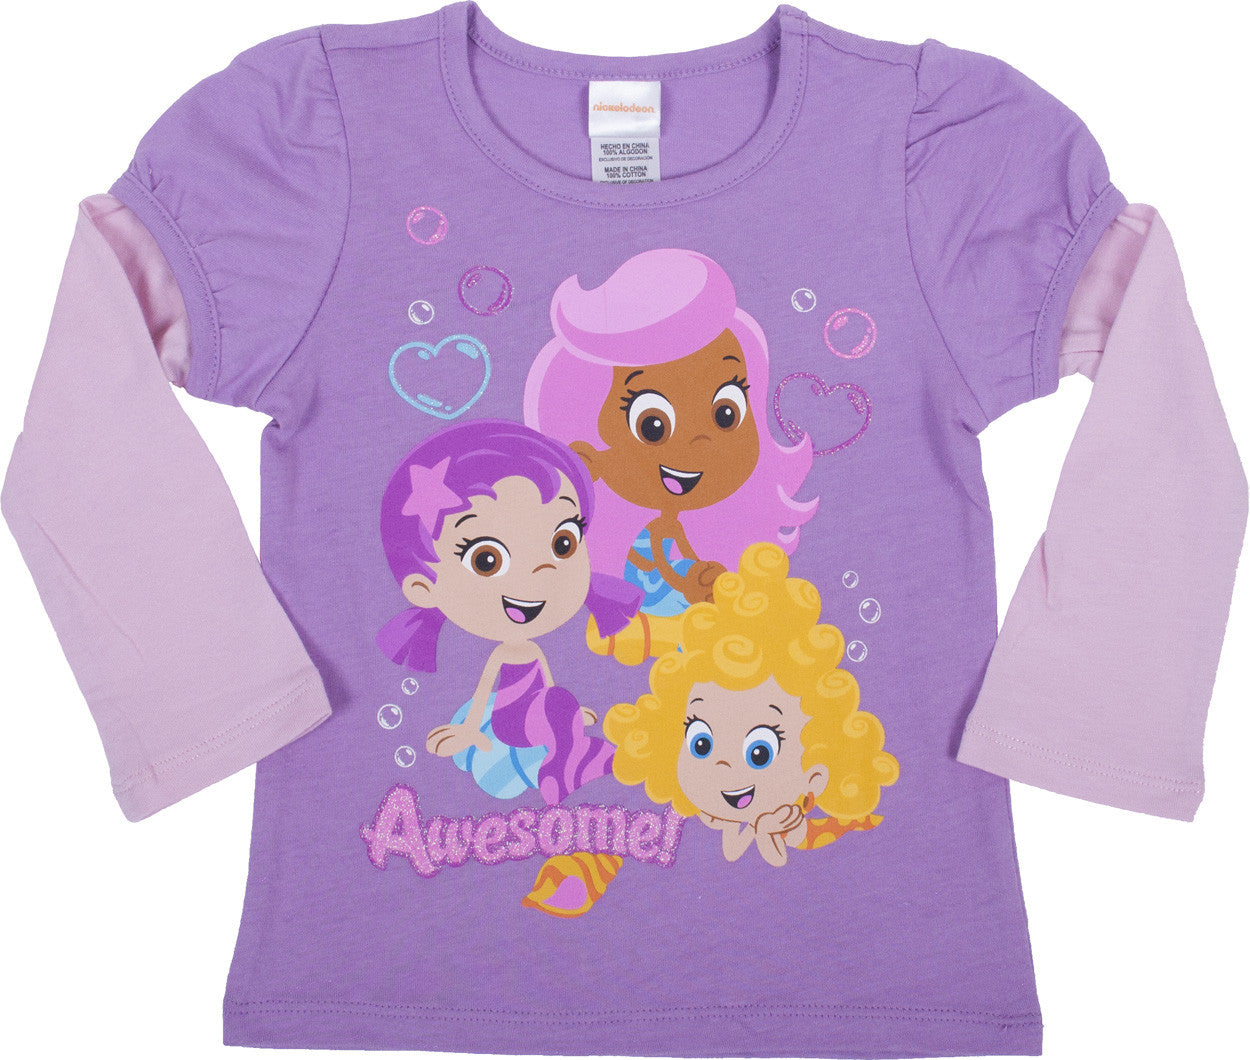 Bubble Guppies Two-Fer Tee - Toddler - nickelodeonstore.co.uk